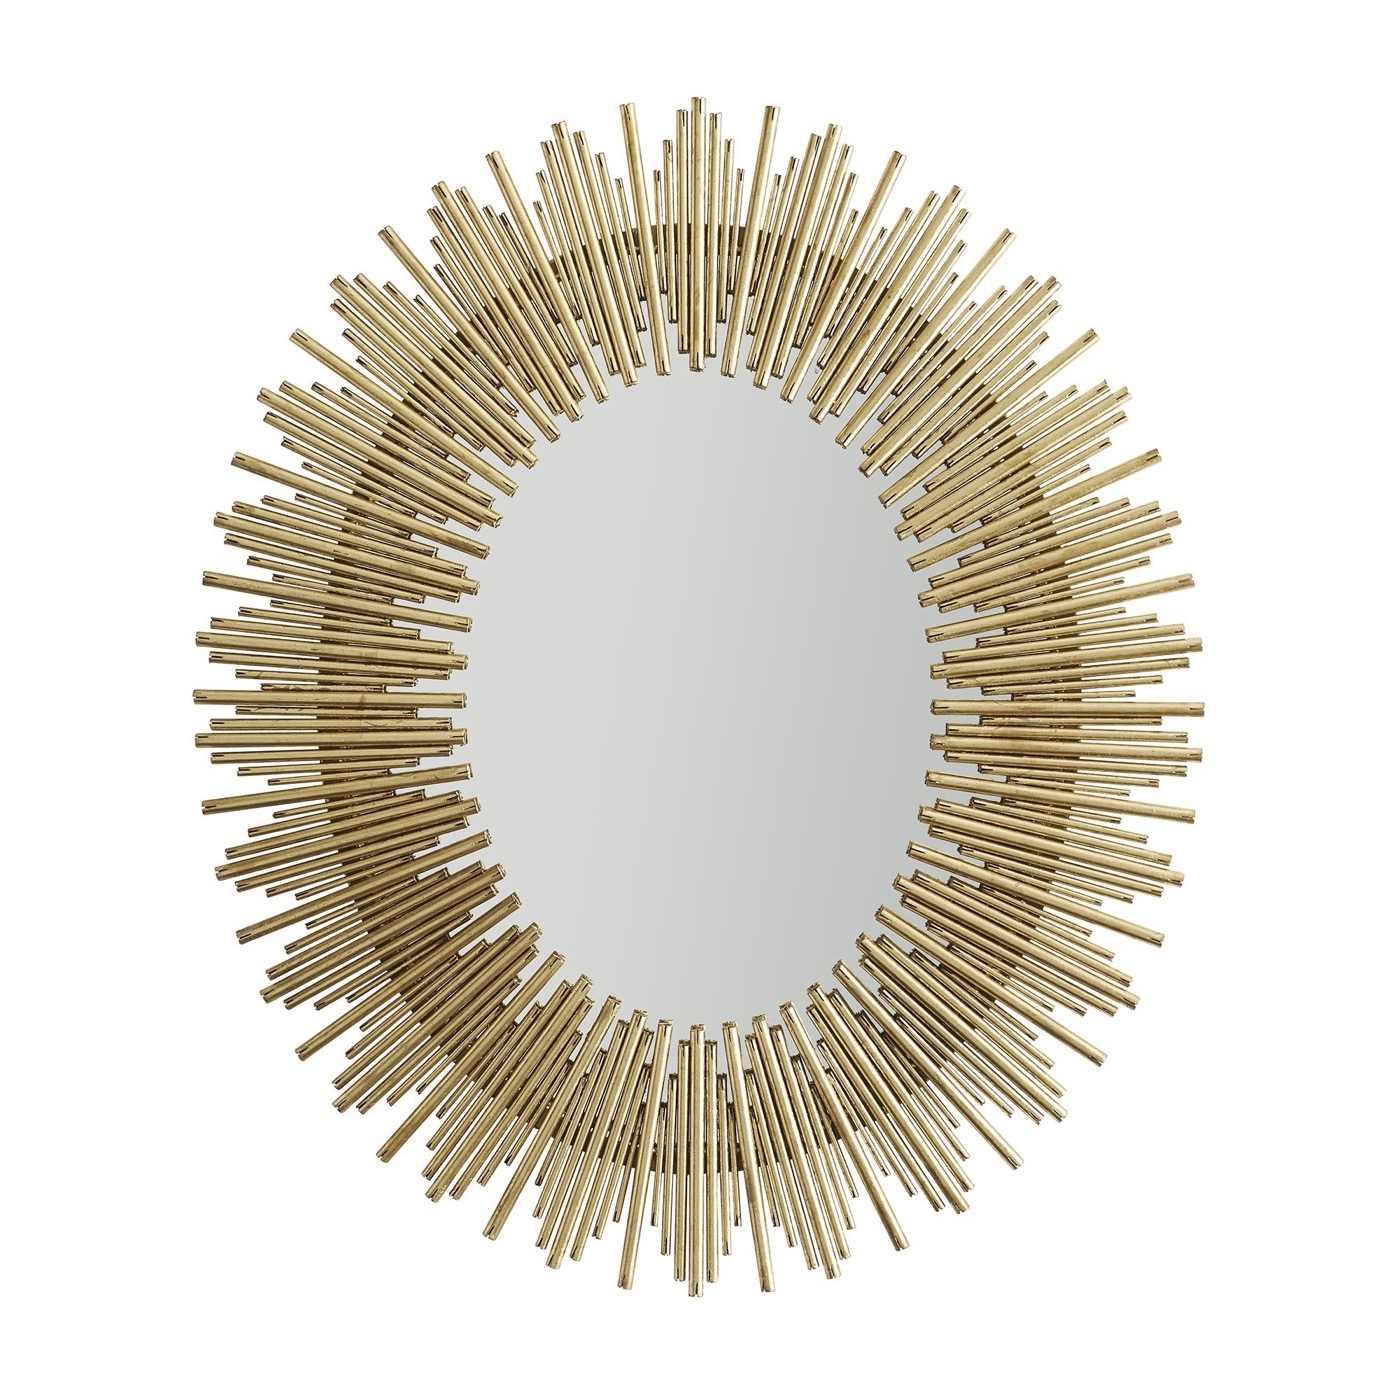 Kentwood Oval Wall Mirror | Gold Regarding Kentwood Round Wall Mirrors (View 12 of 20)